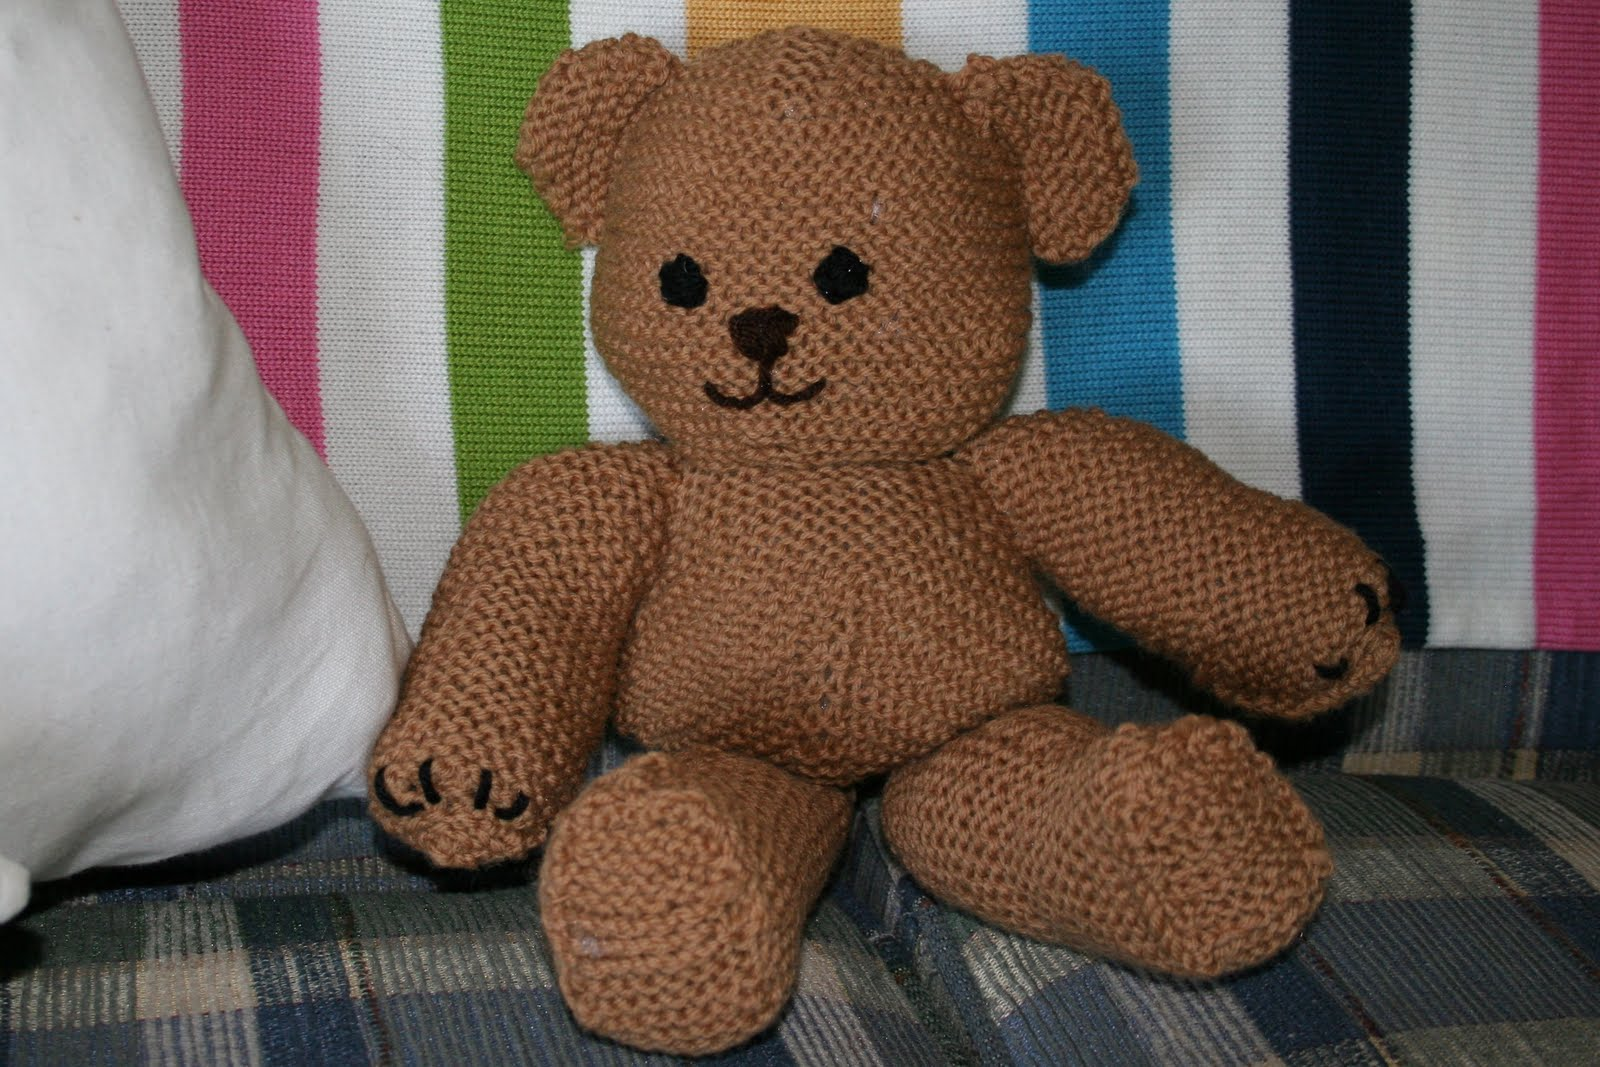 Teddy Bear Patterns For Free To Knit Sew Or Crochet   USF Bloggers Planet